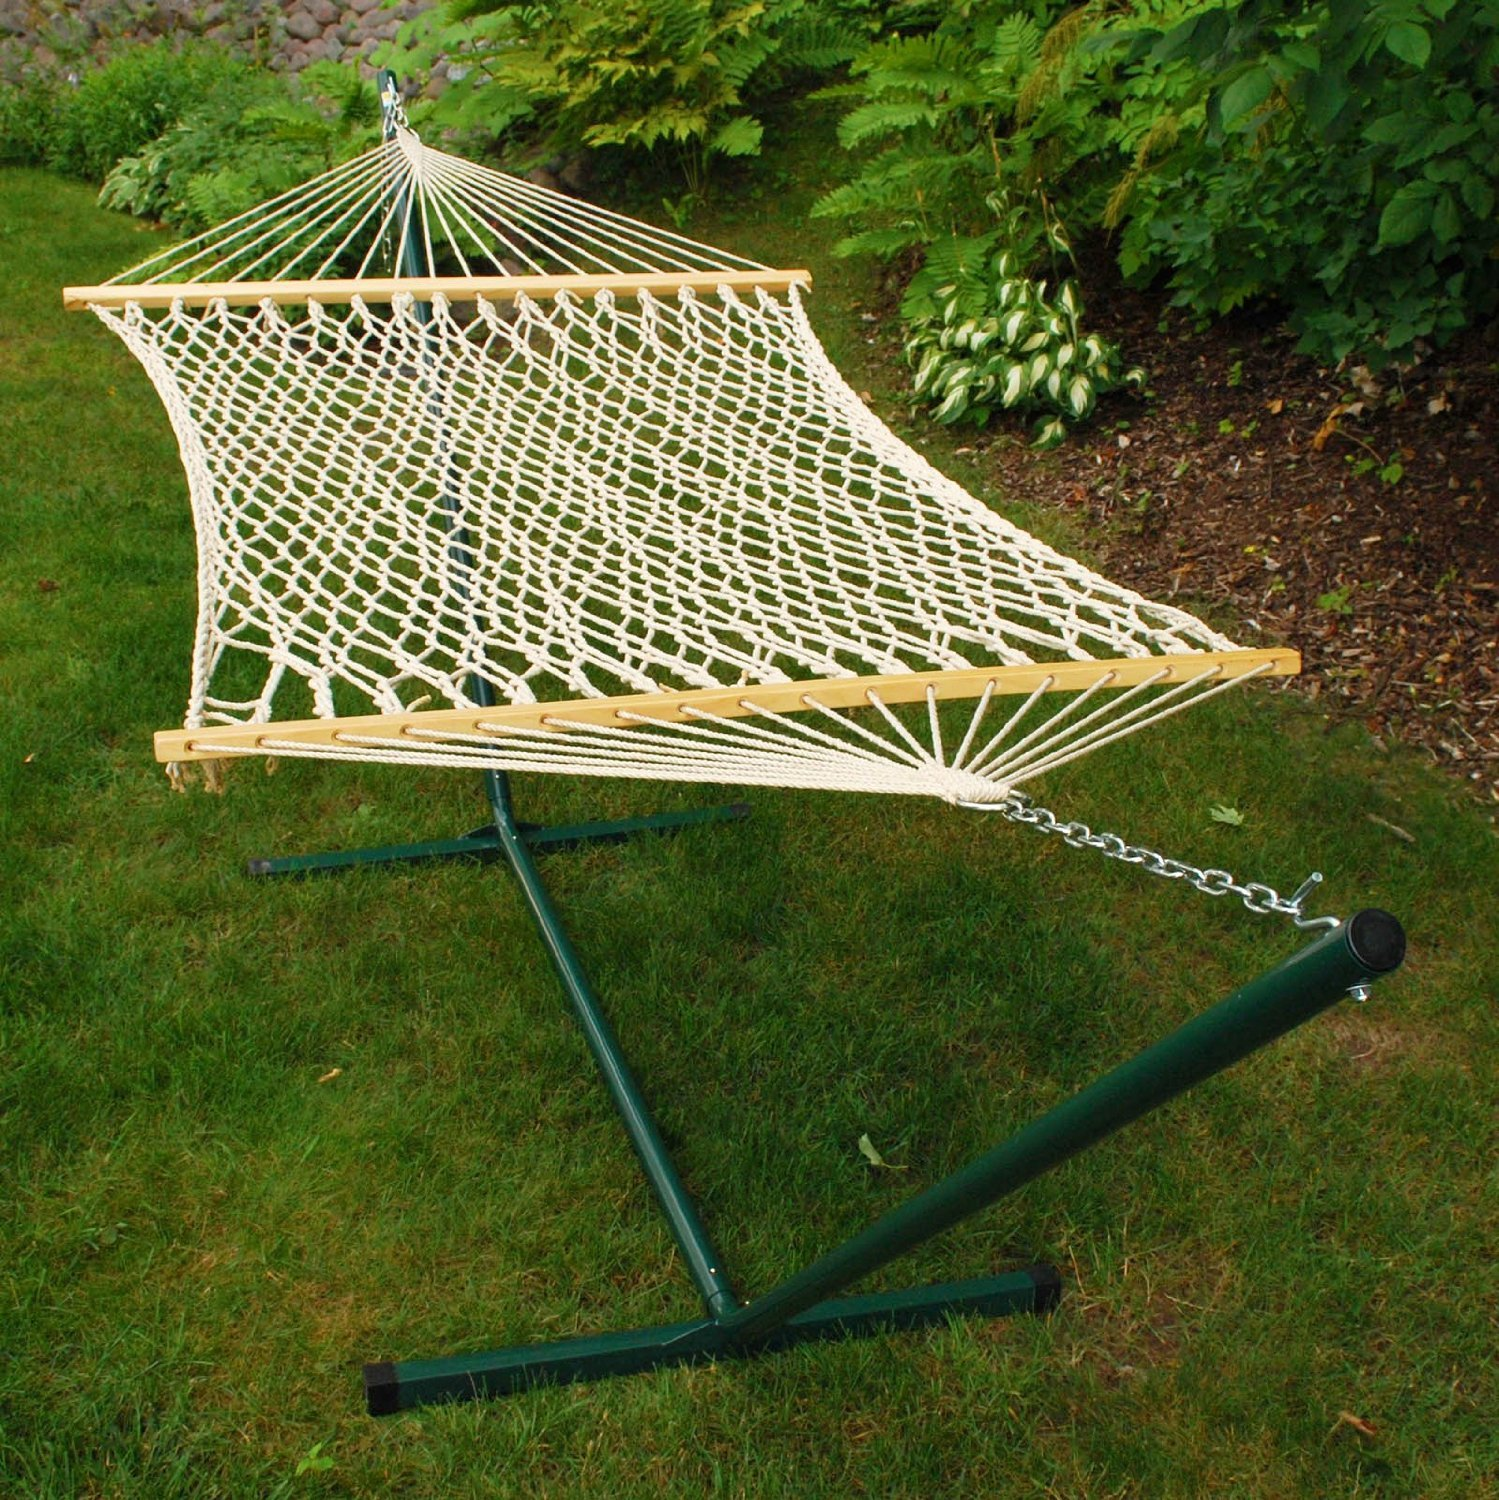 Amazon.com : Rope Hammock and Stand Combo Set : Hammock With Stand : Patio,  Lawn & Garden - Amazon.com : Rope Hammock And Stand Combo Set : Hammock With Stand